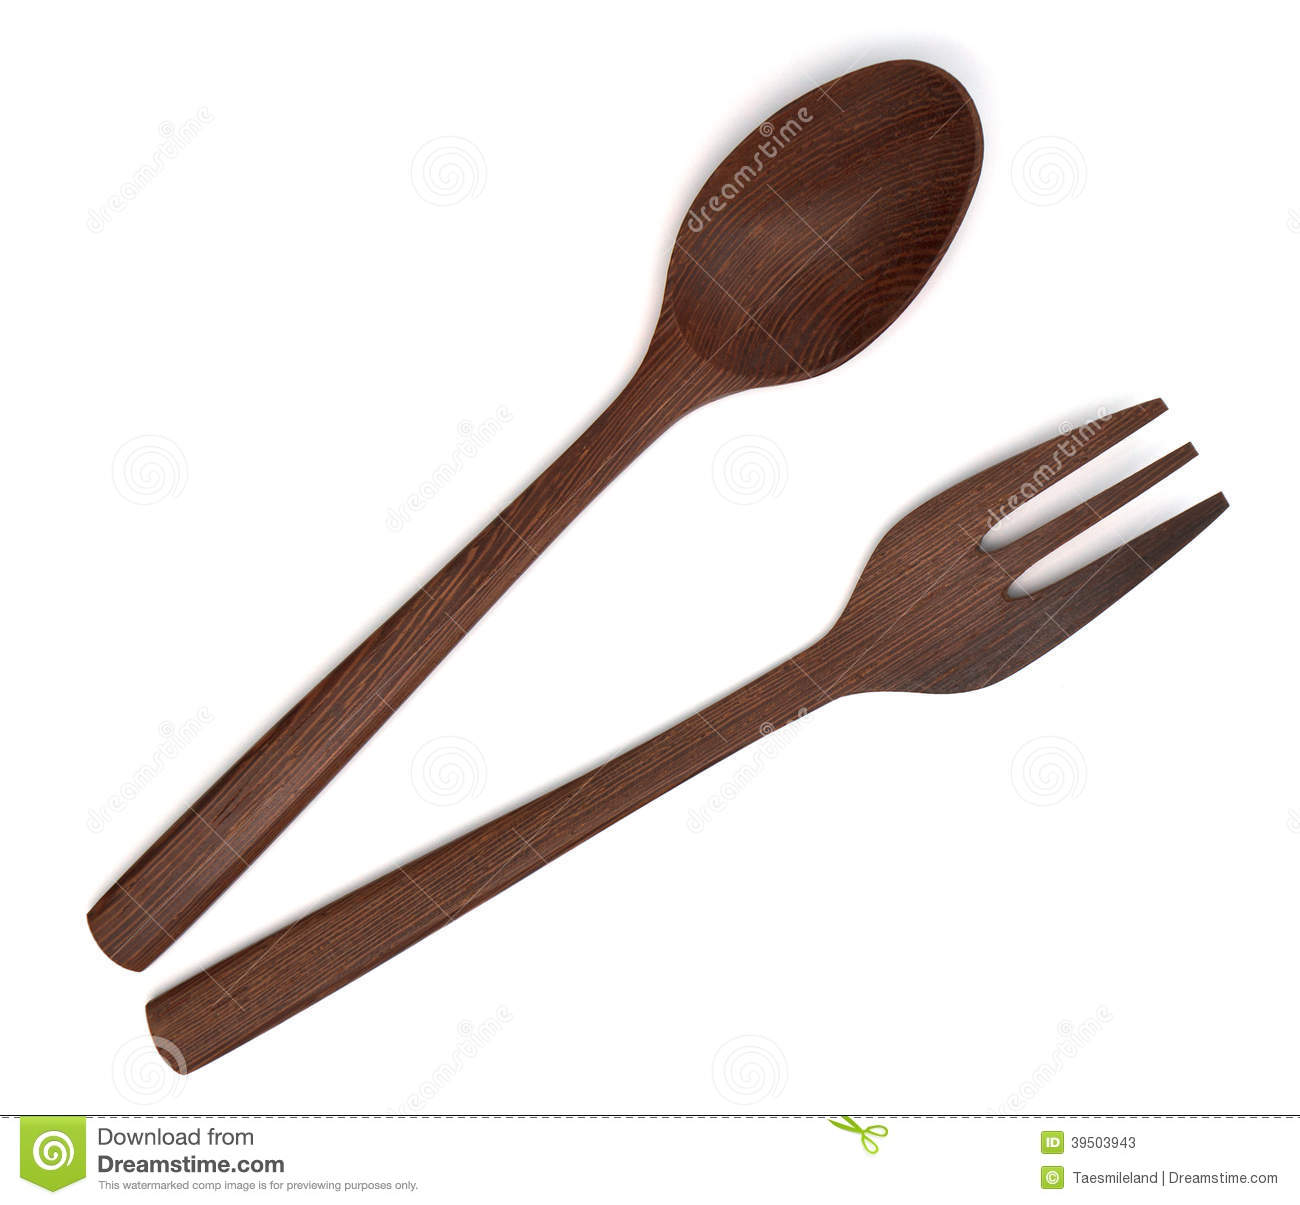 Wooden fork spoon